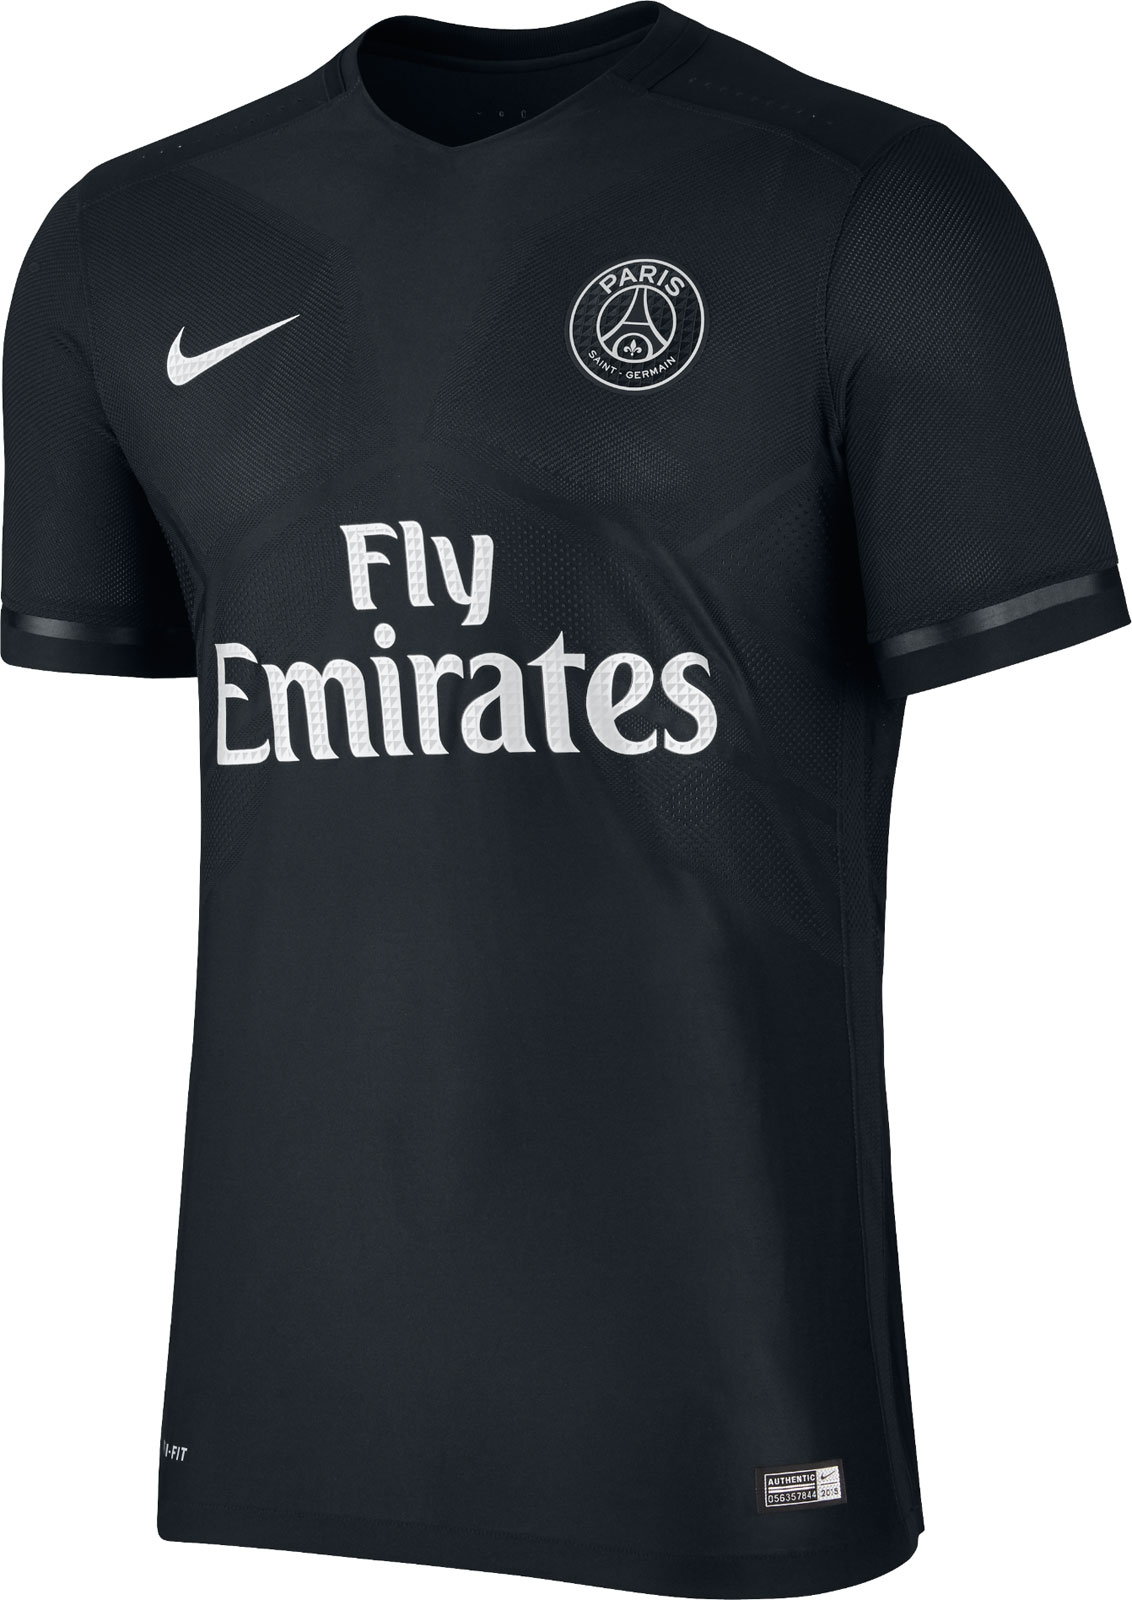 paris saint germain 15 16 kits revealed footy headlines. Black Bedroom Furniture Sets. Home Design Ideas